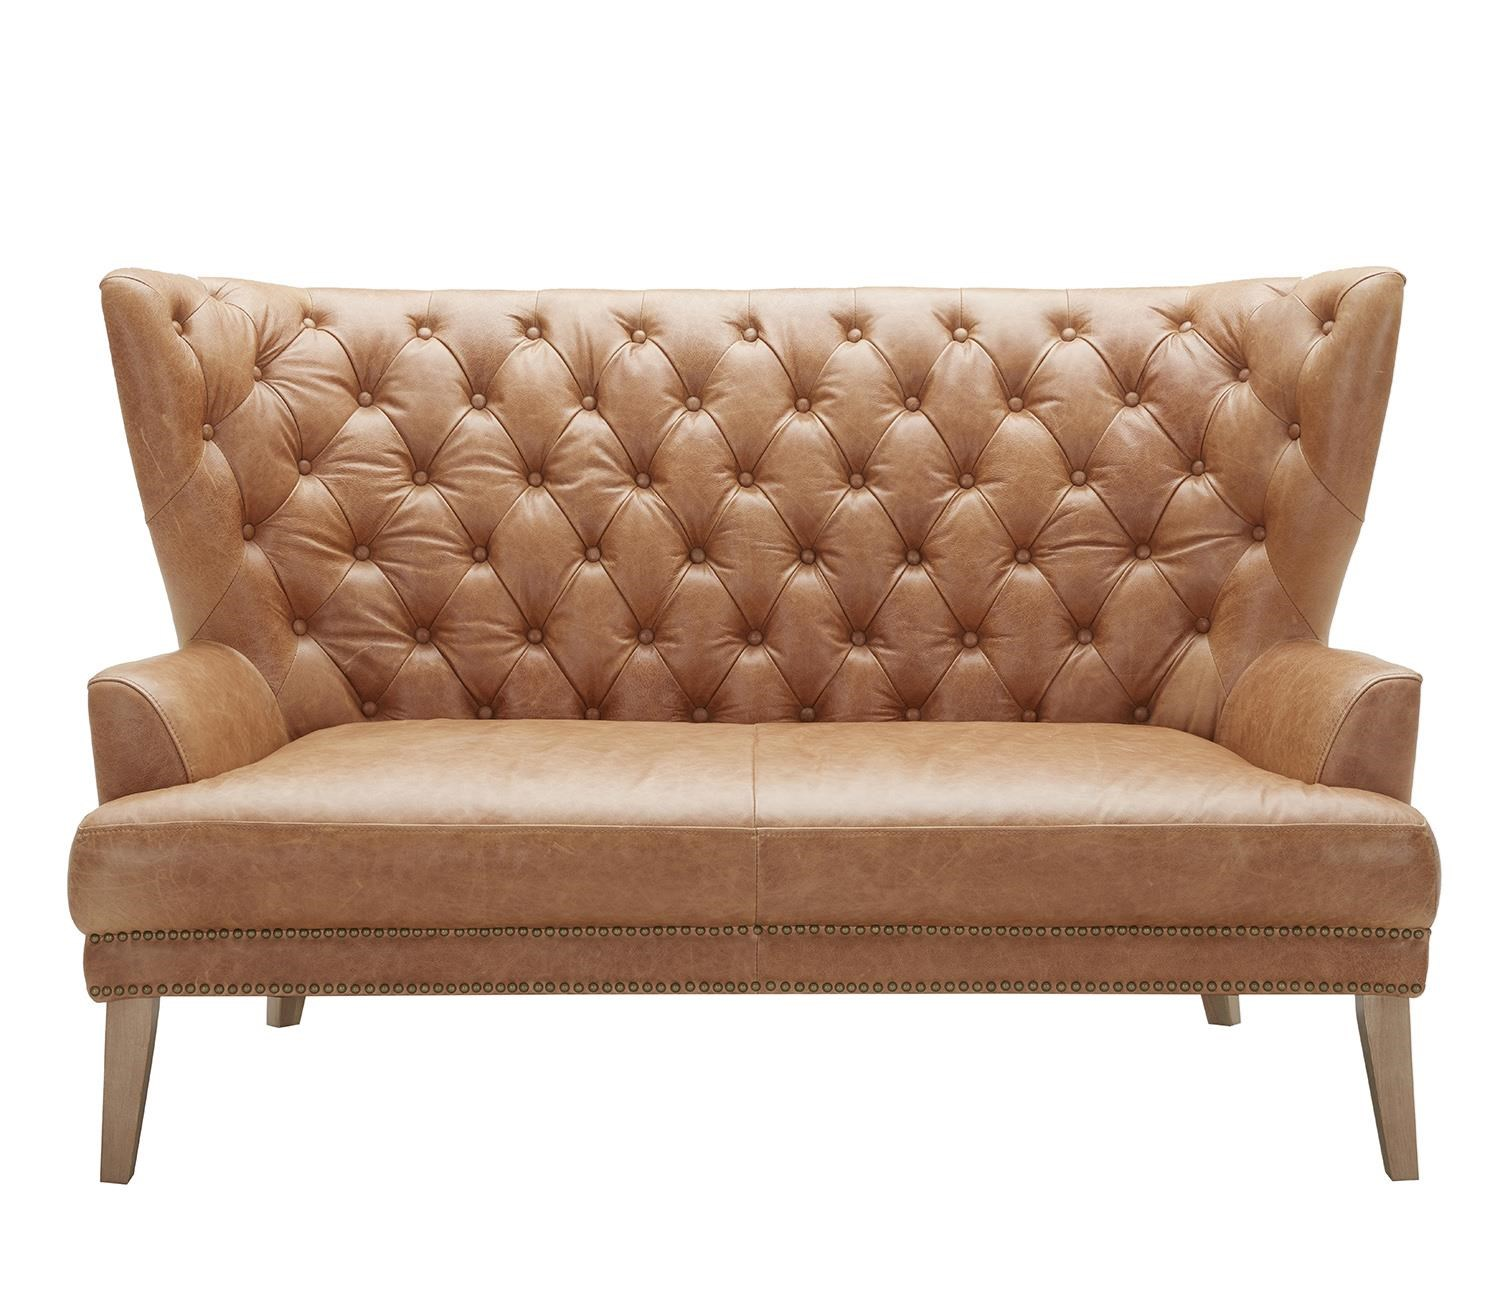 Tufted Leather Settee